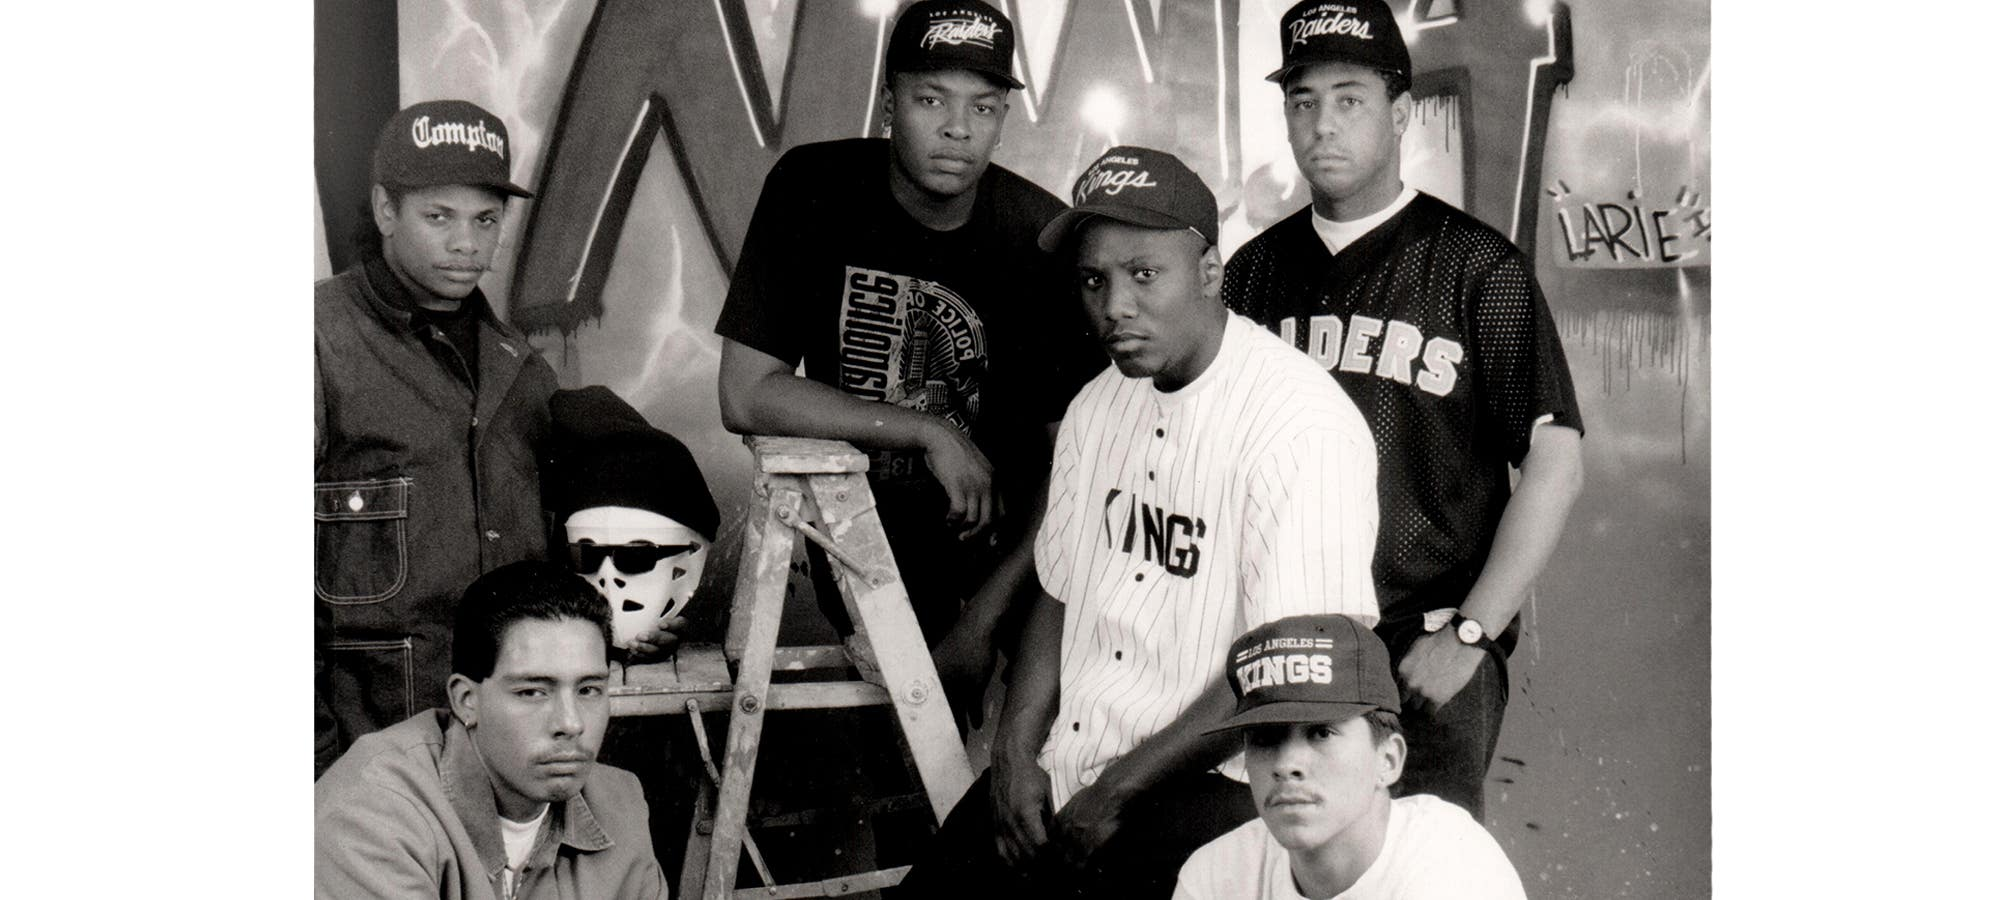 NWA by George Rodriguez at the Vincent Price Art Museum in Monterey Park